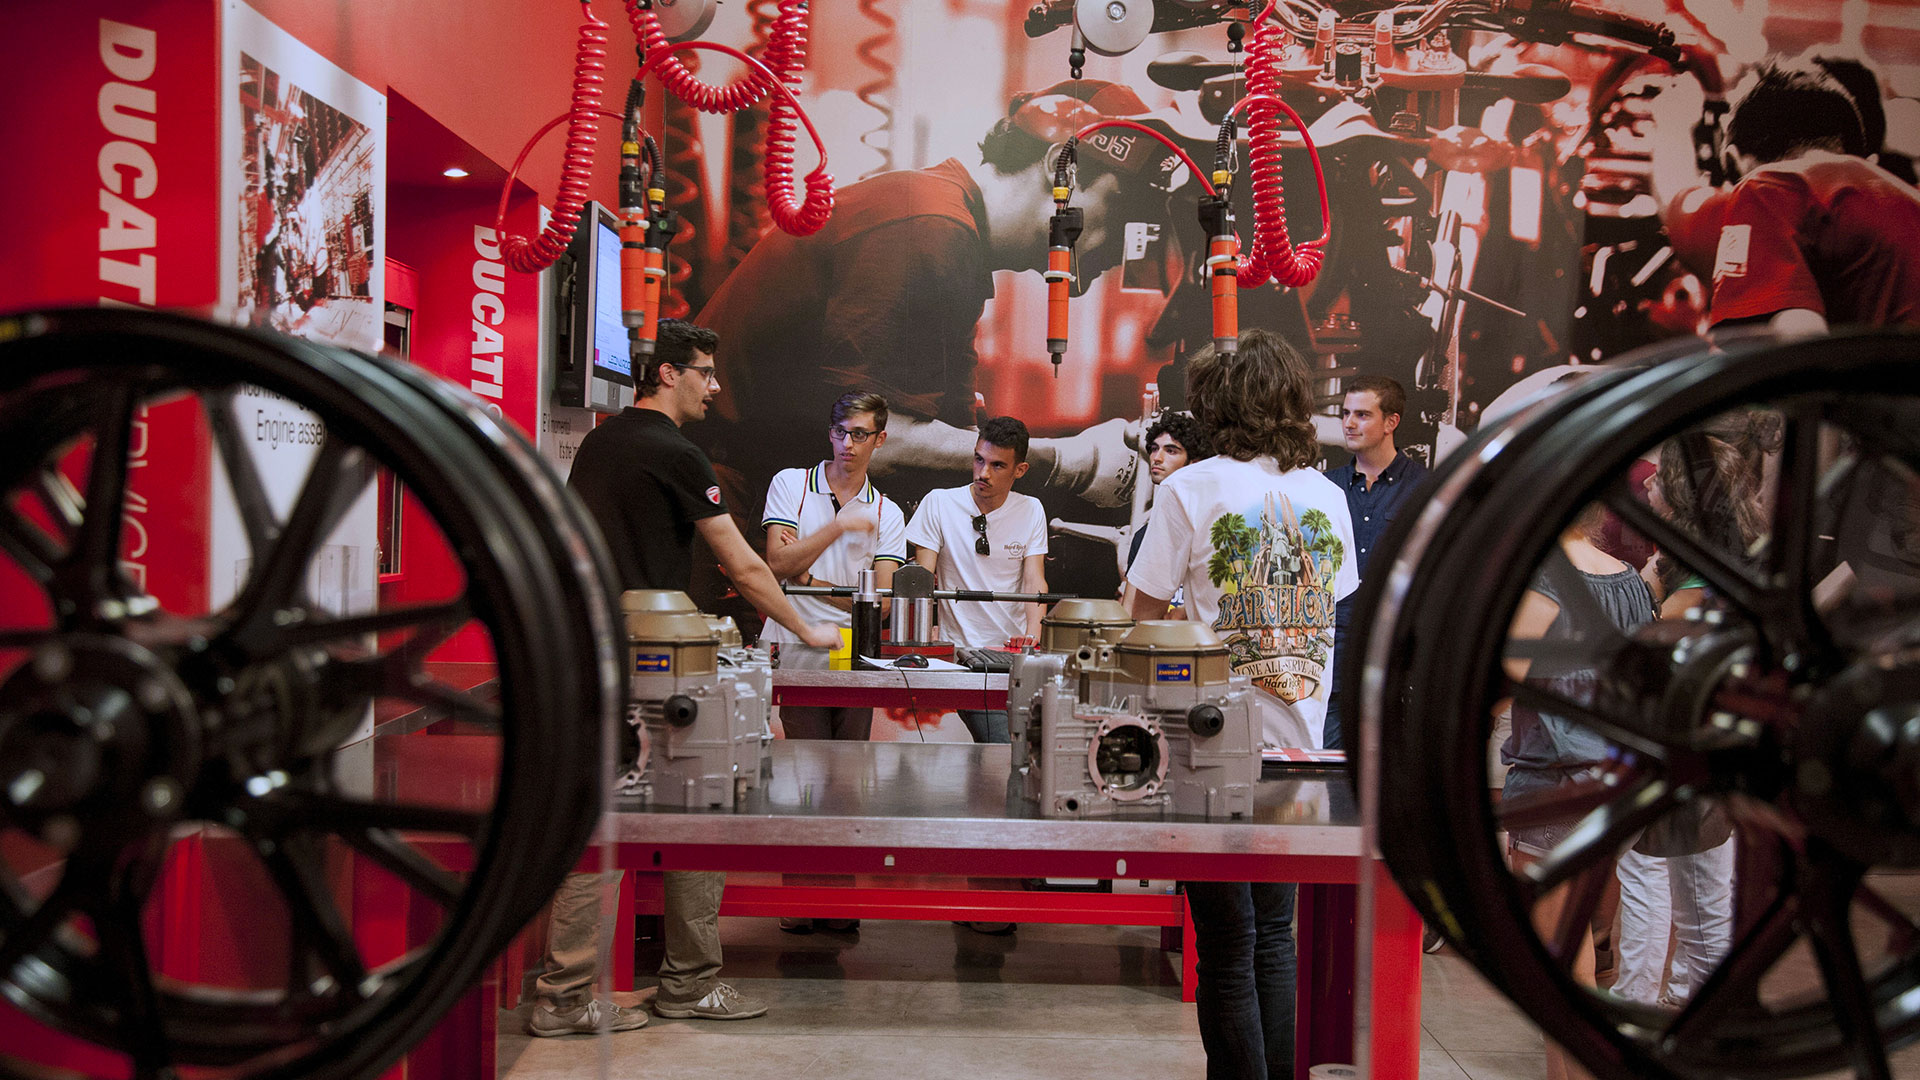 Ducati for Education - education and training for young people.